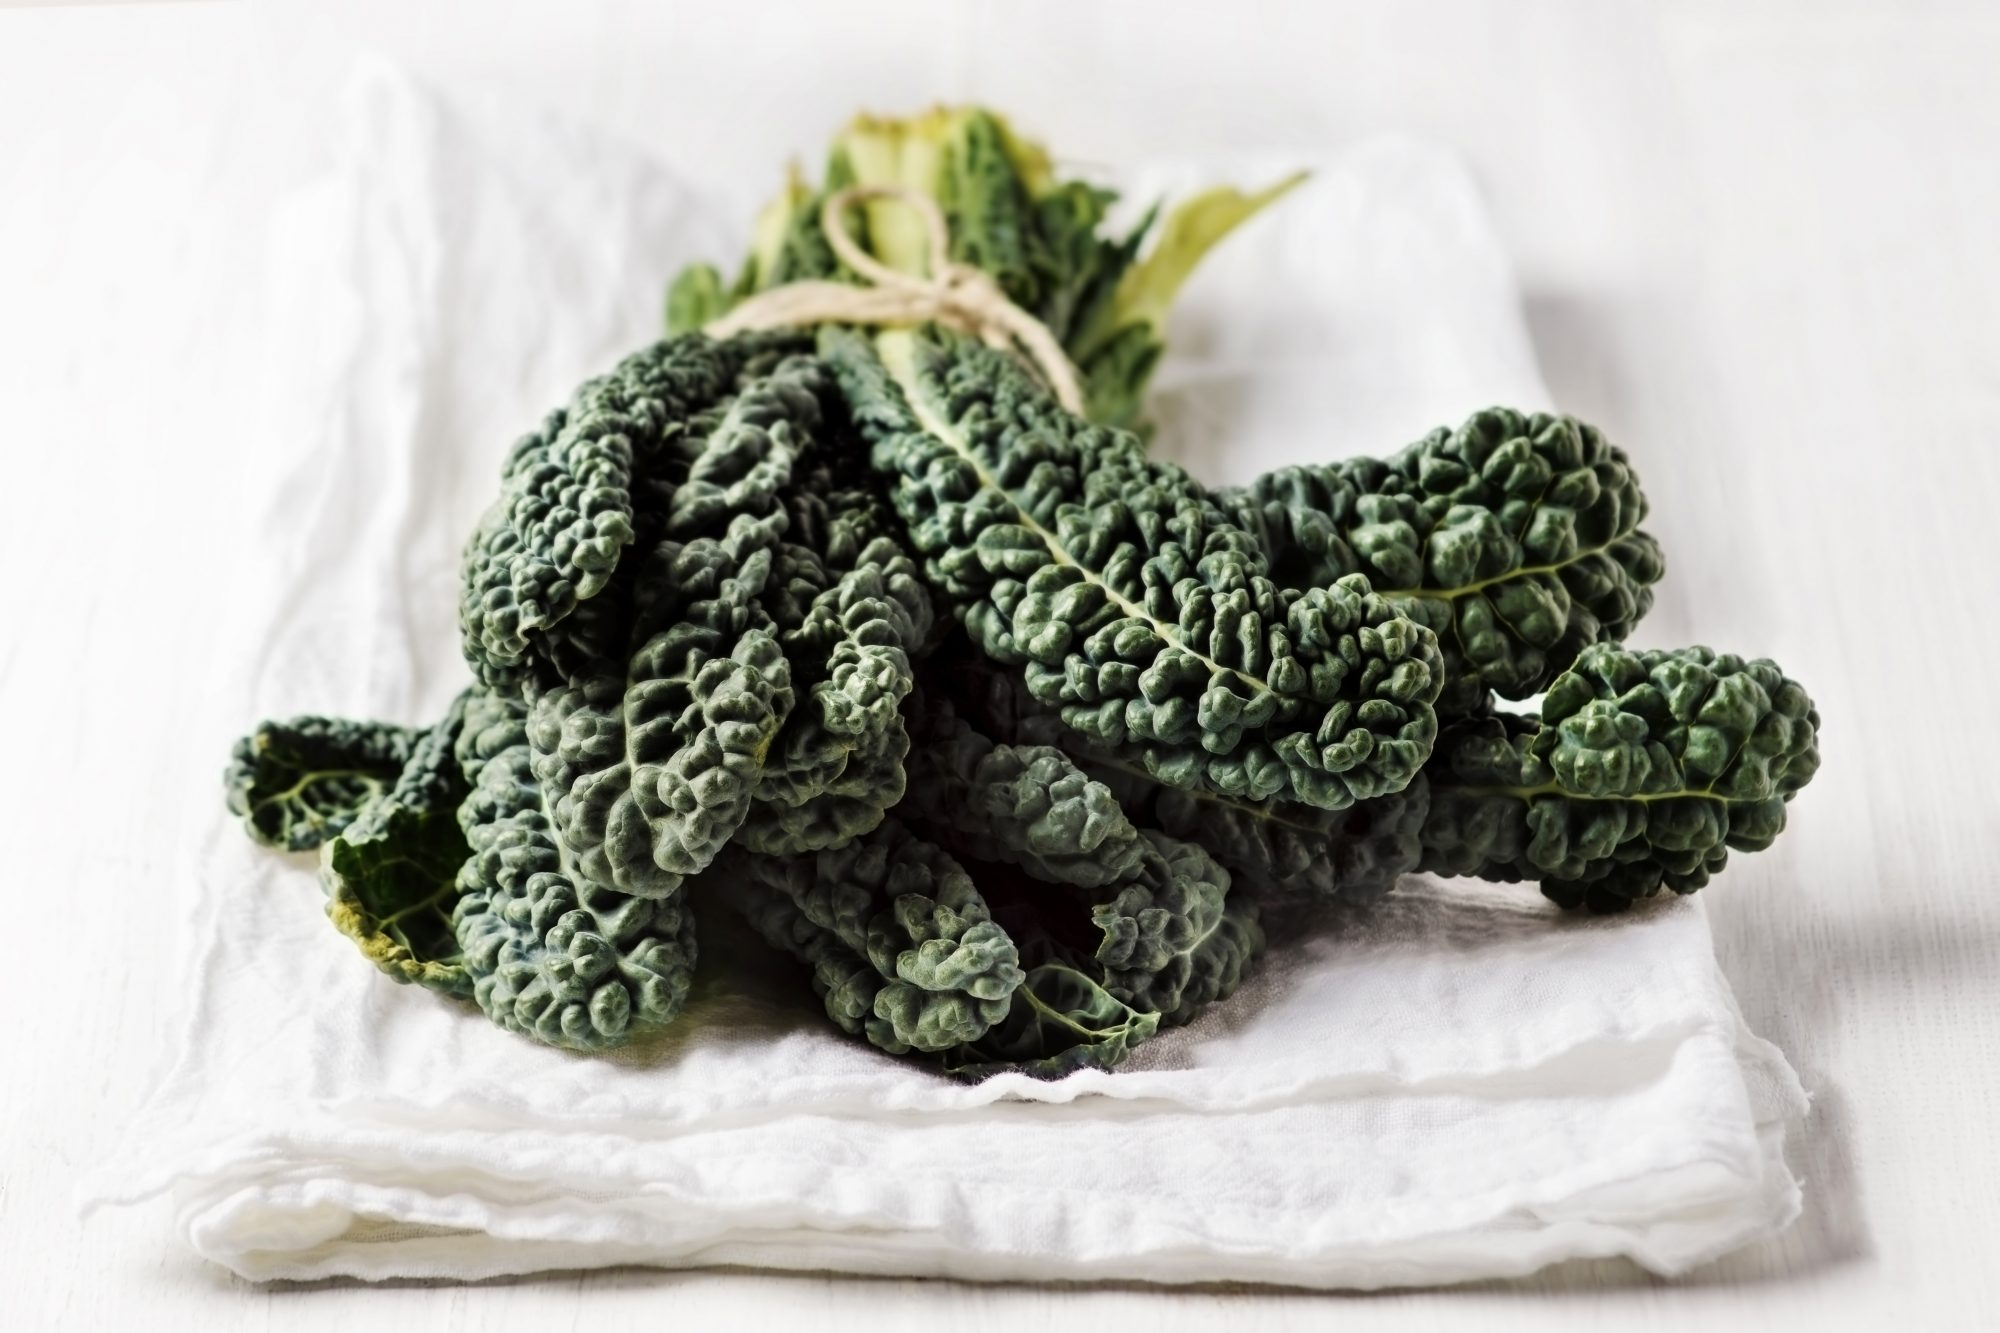 082120_Getty Kale image